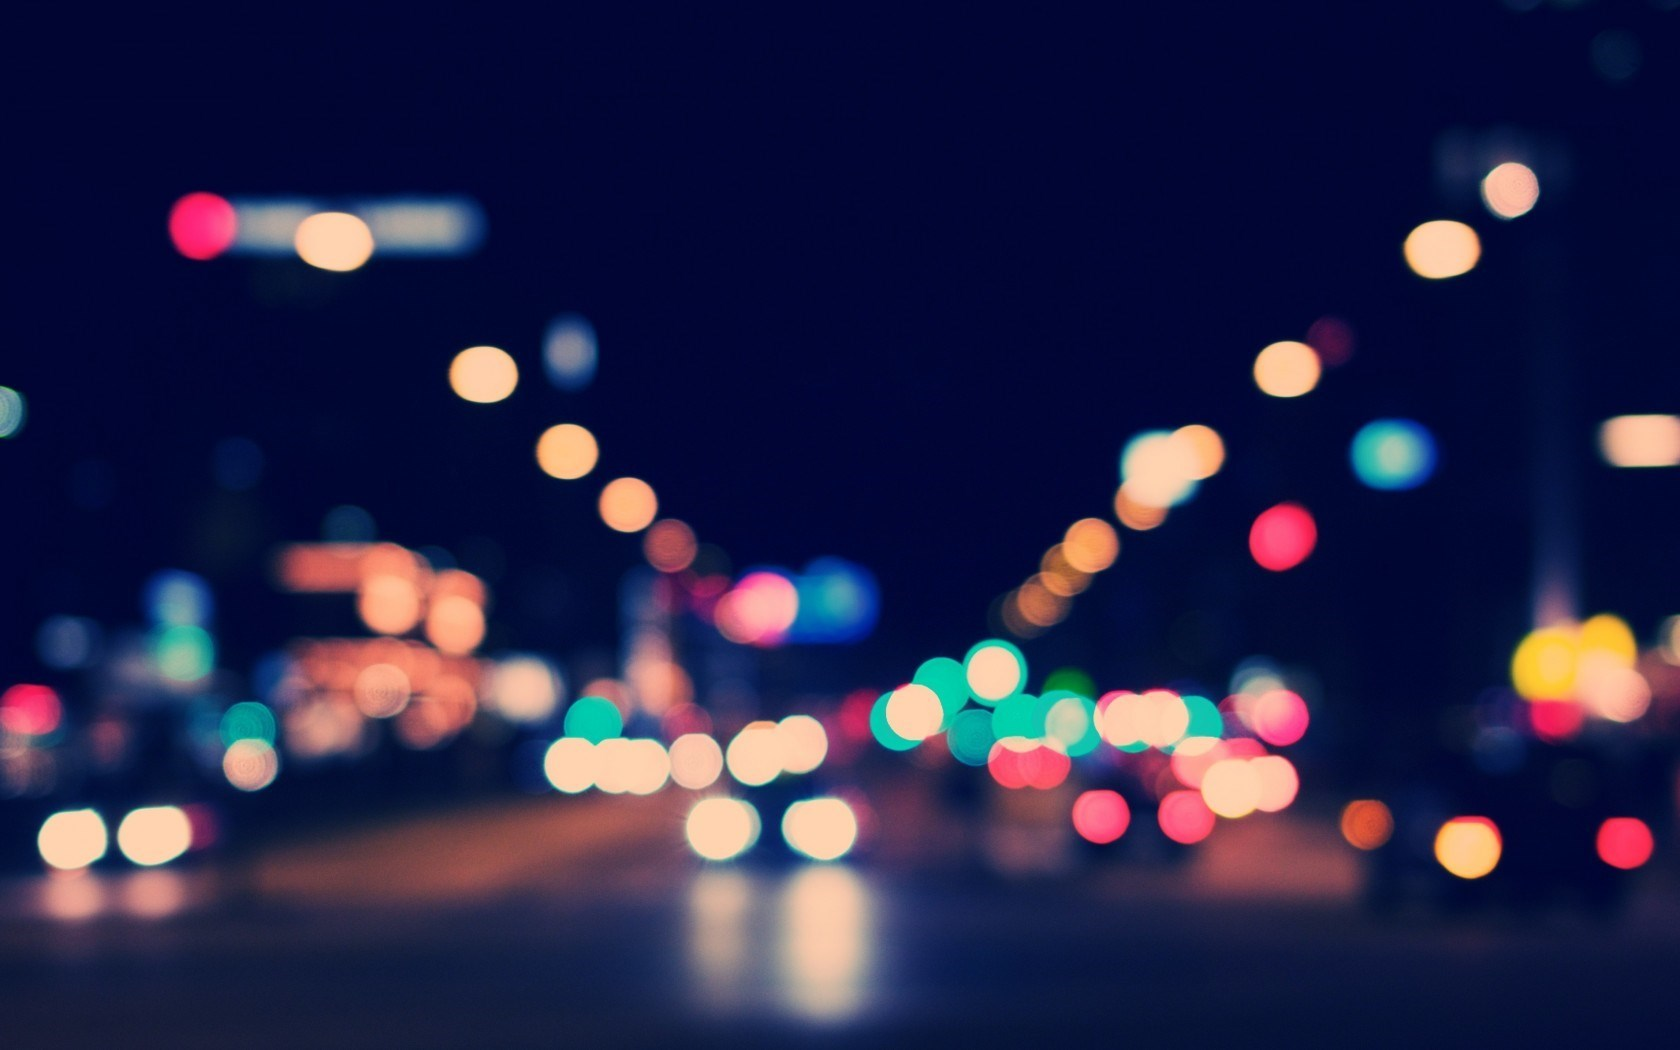 Simple Wallpaper Night City Street - latest?cb\u003d20161218161518  Pictures.jpg/revision/latest?cb\u003d20161218161518